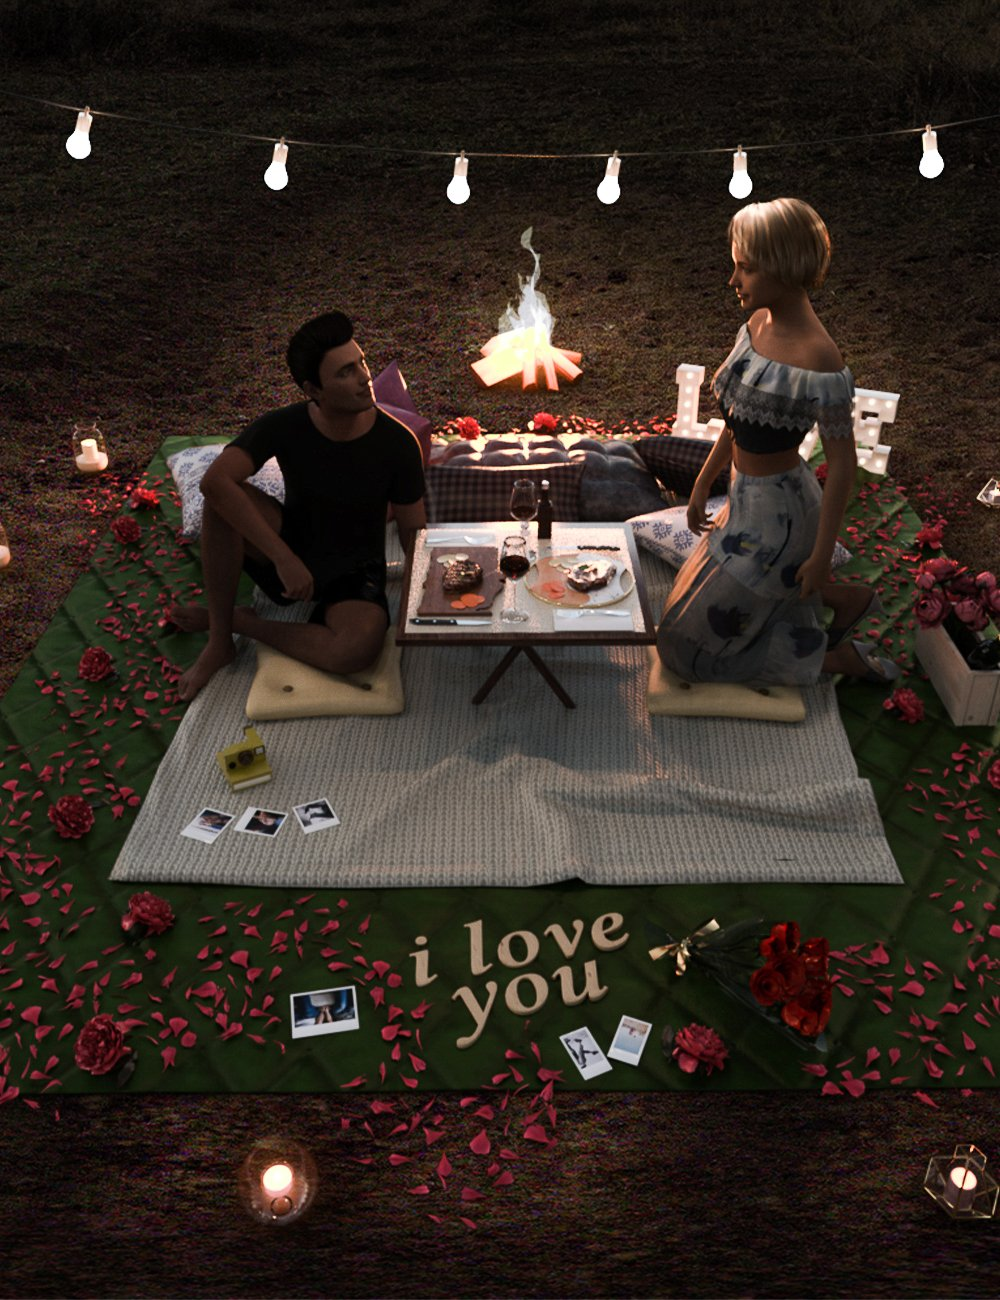 Date Night Setup by: bituka3d, 3D Models by Daz 3D